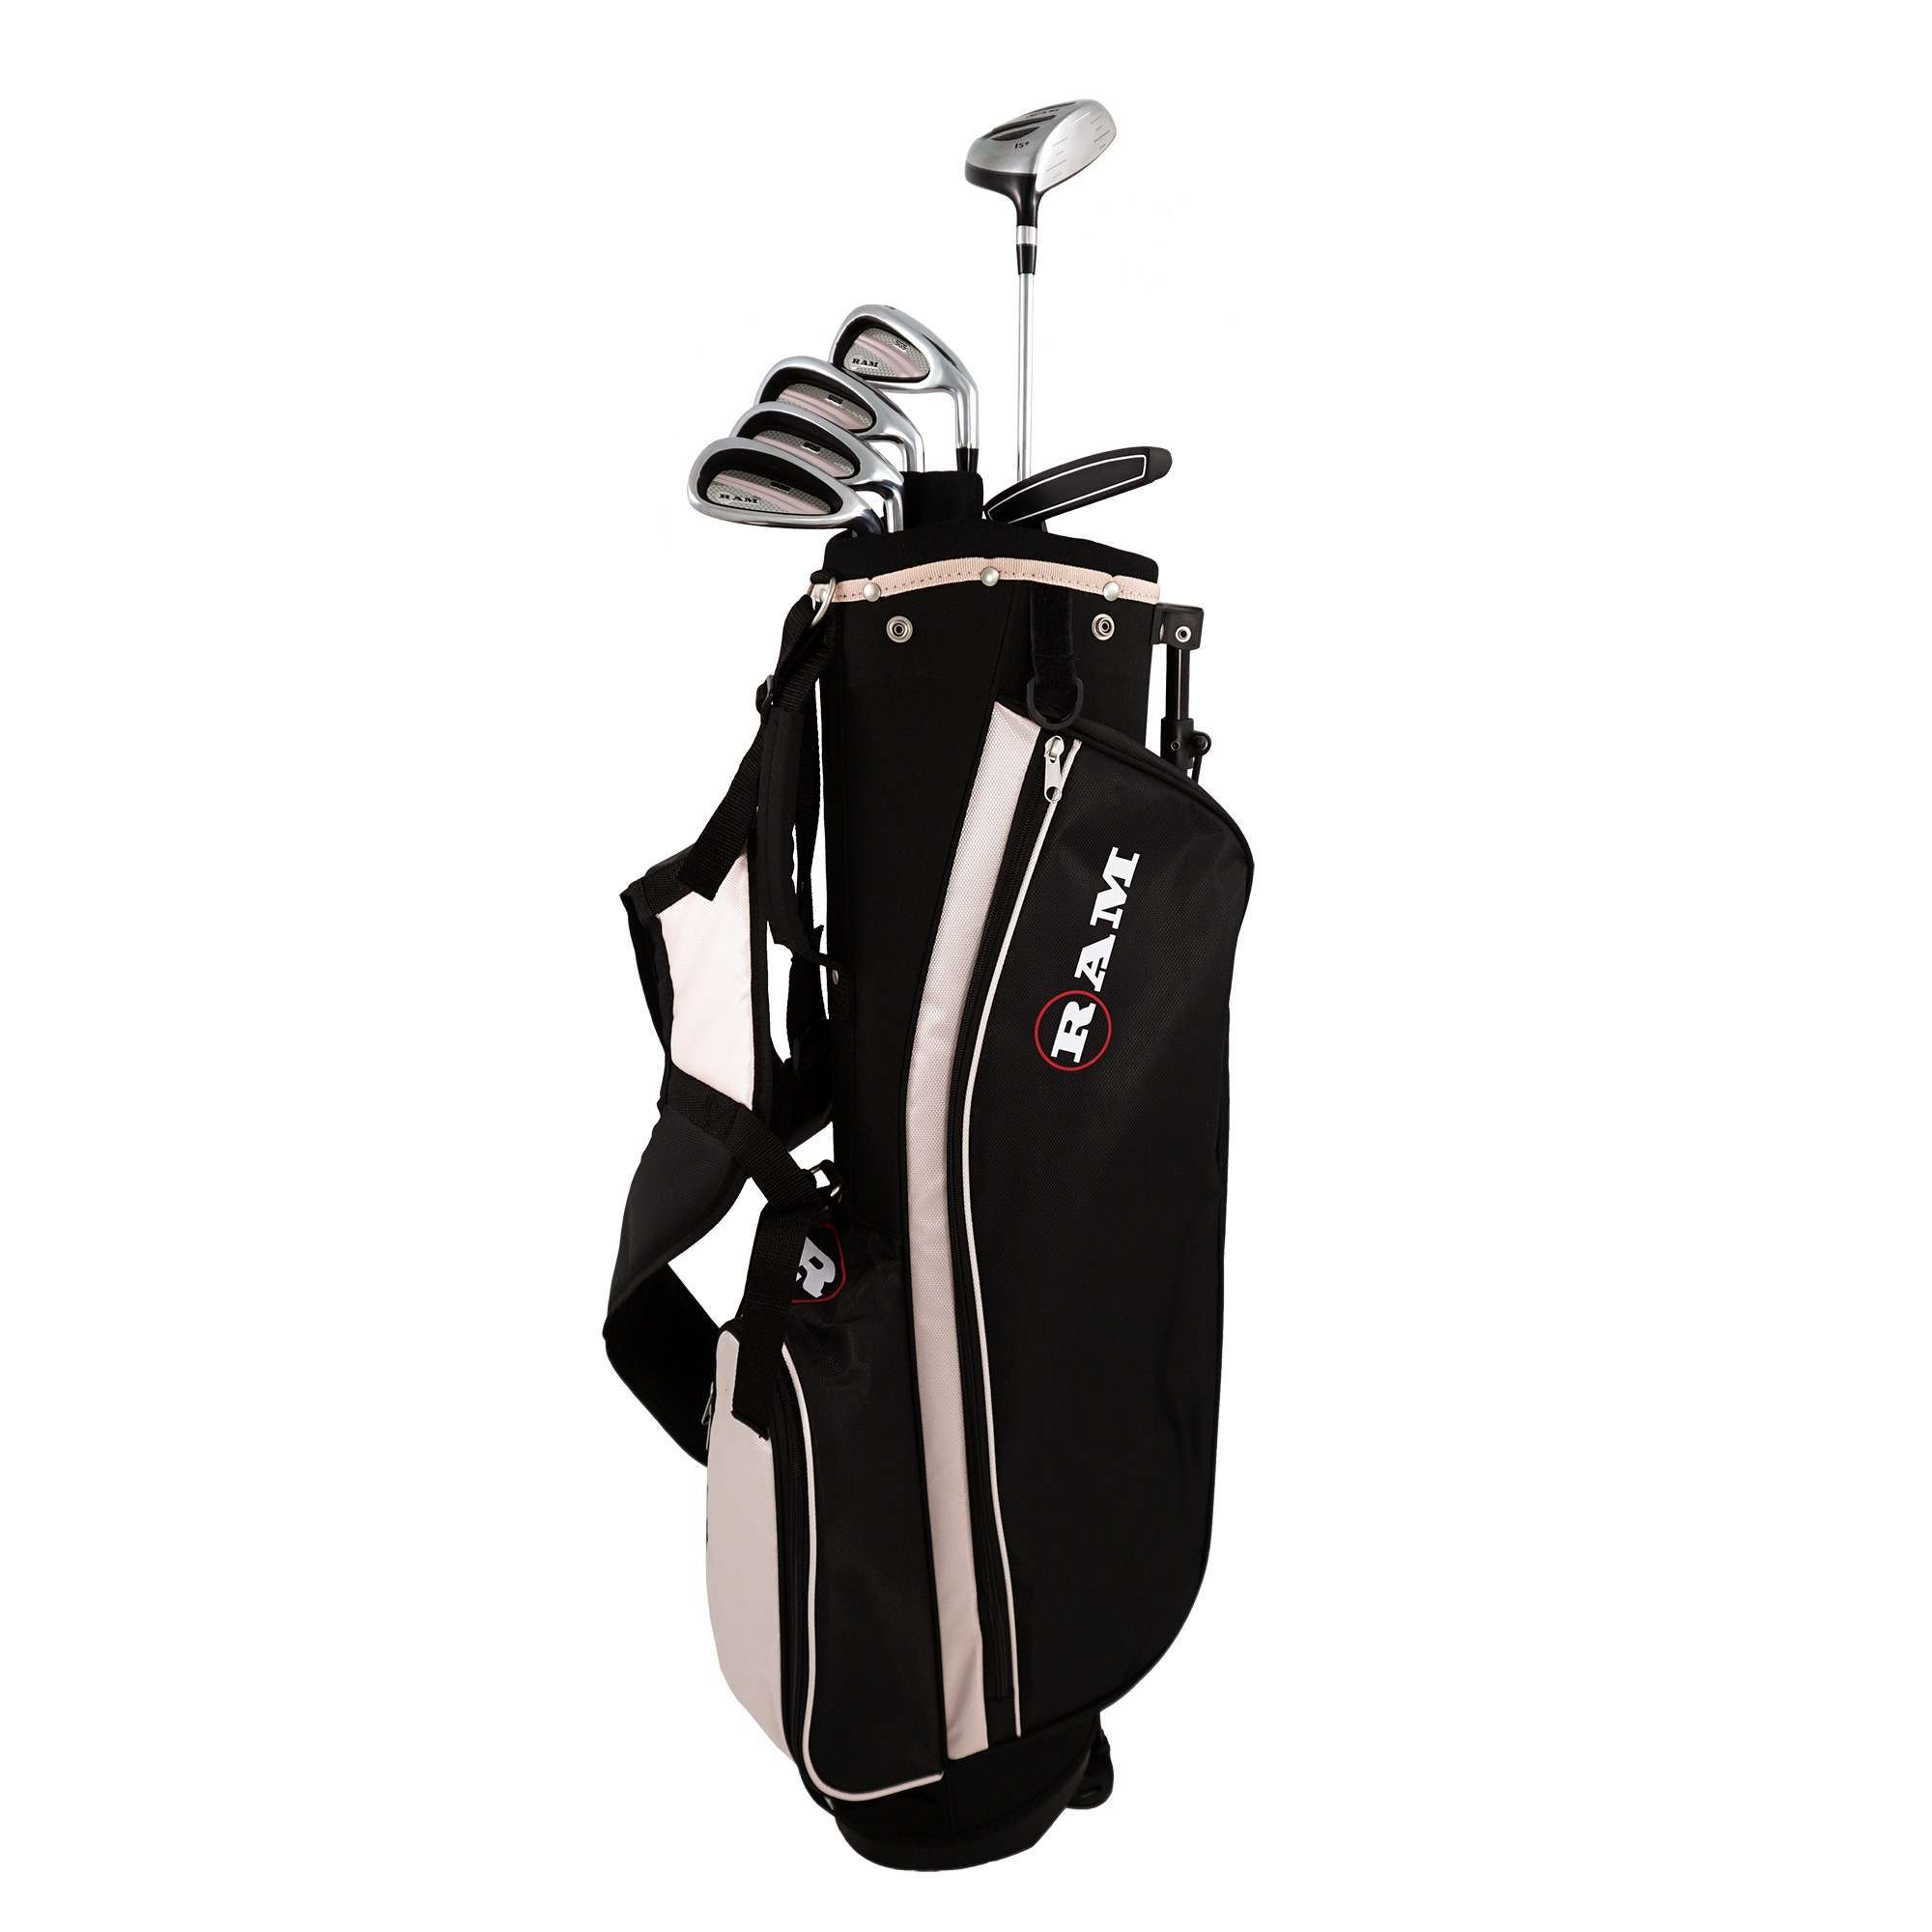 b20b22ffb5 Ram Golf SGS Ladies Golf Clubs Set with Stand Bag - Steel Shafts - Golf  Outlets of America - Golf Outlets of America